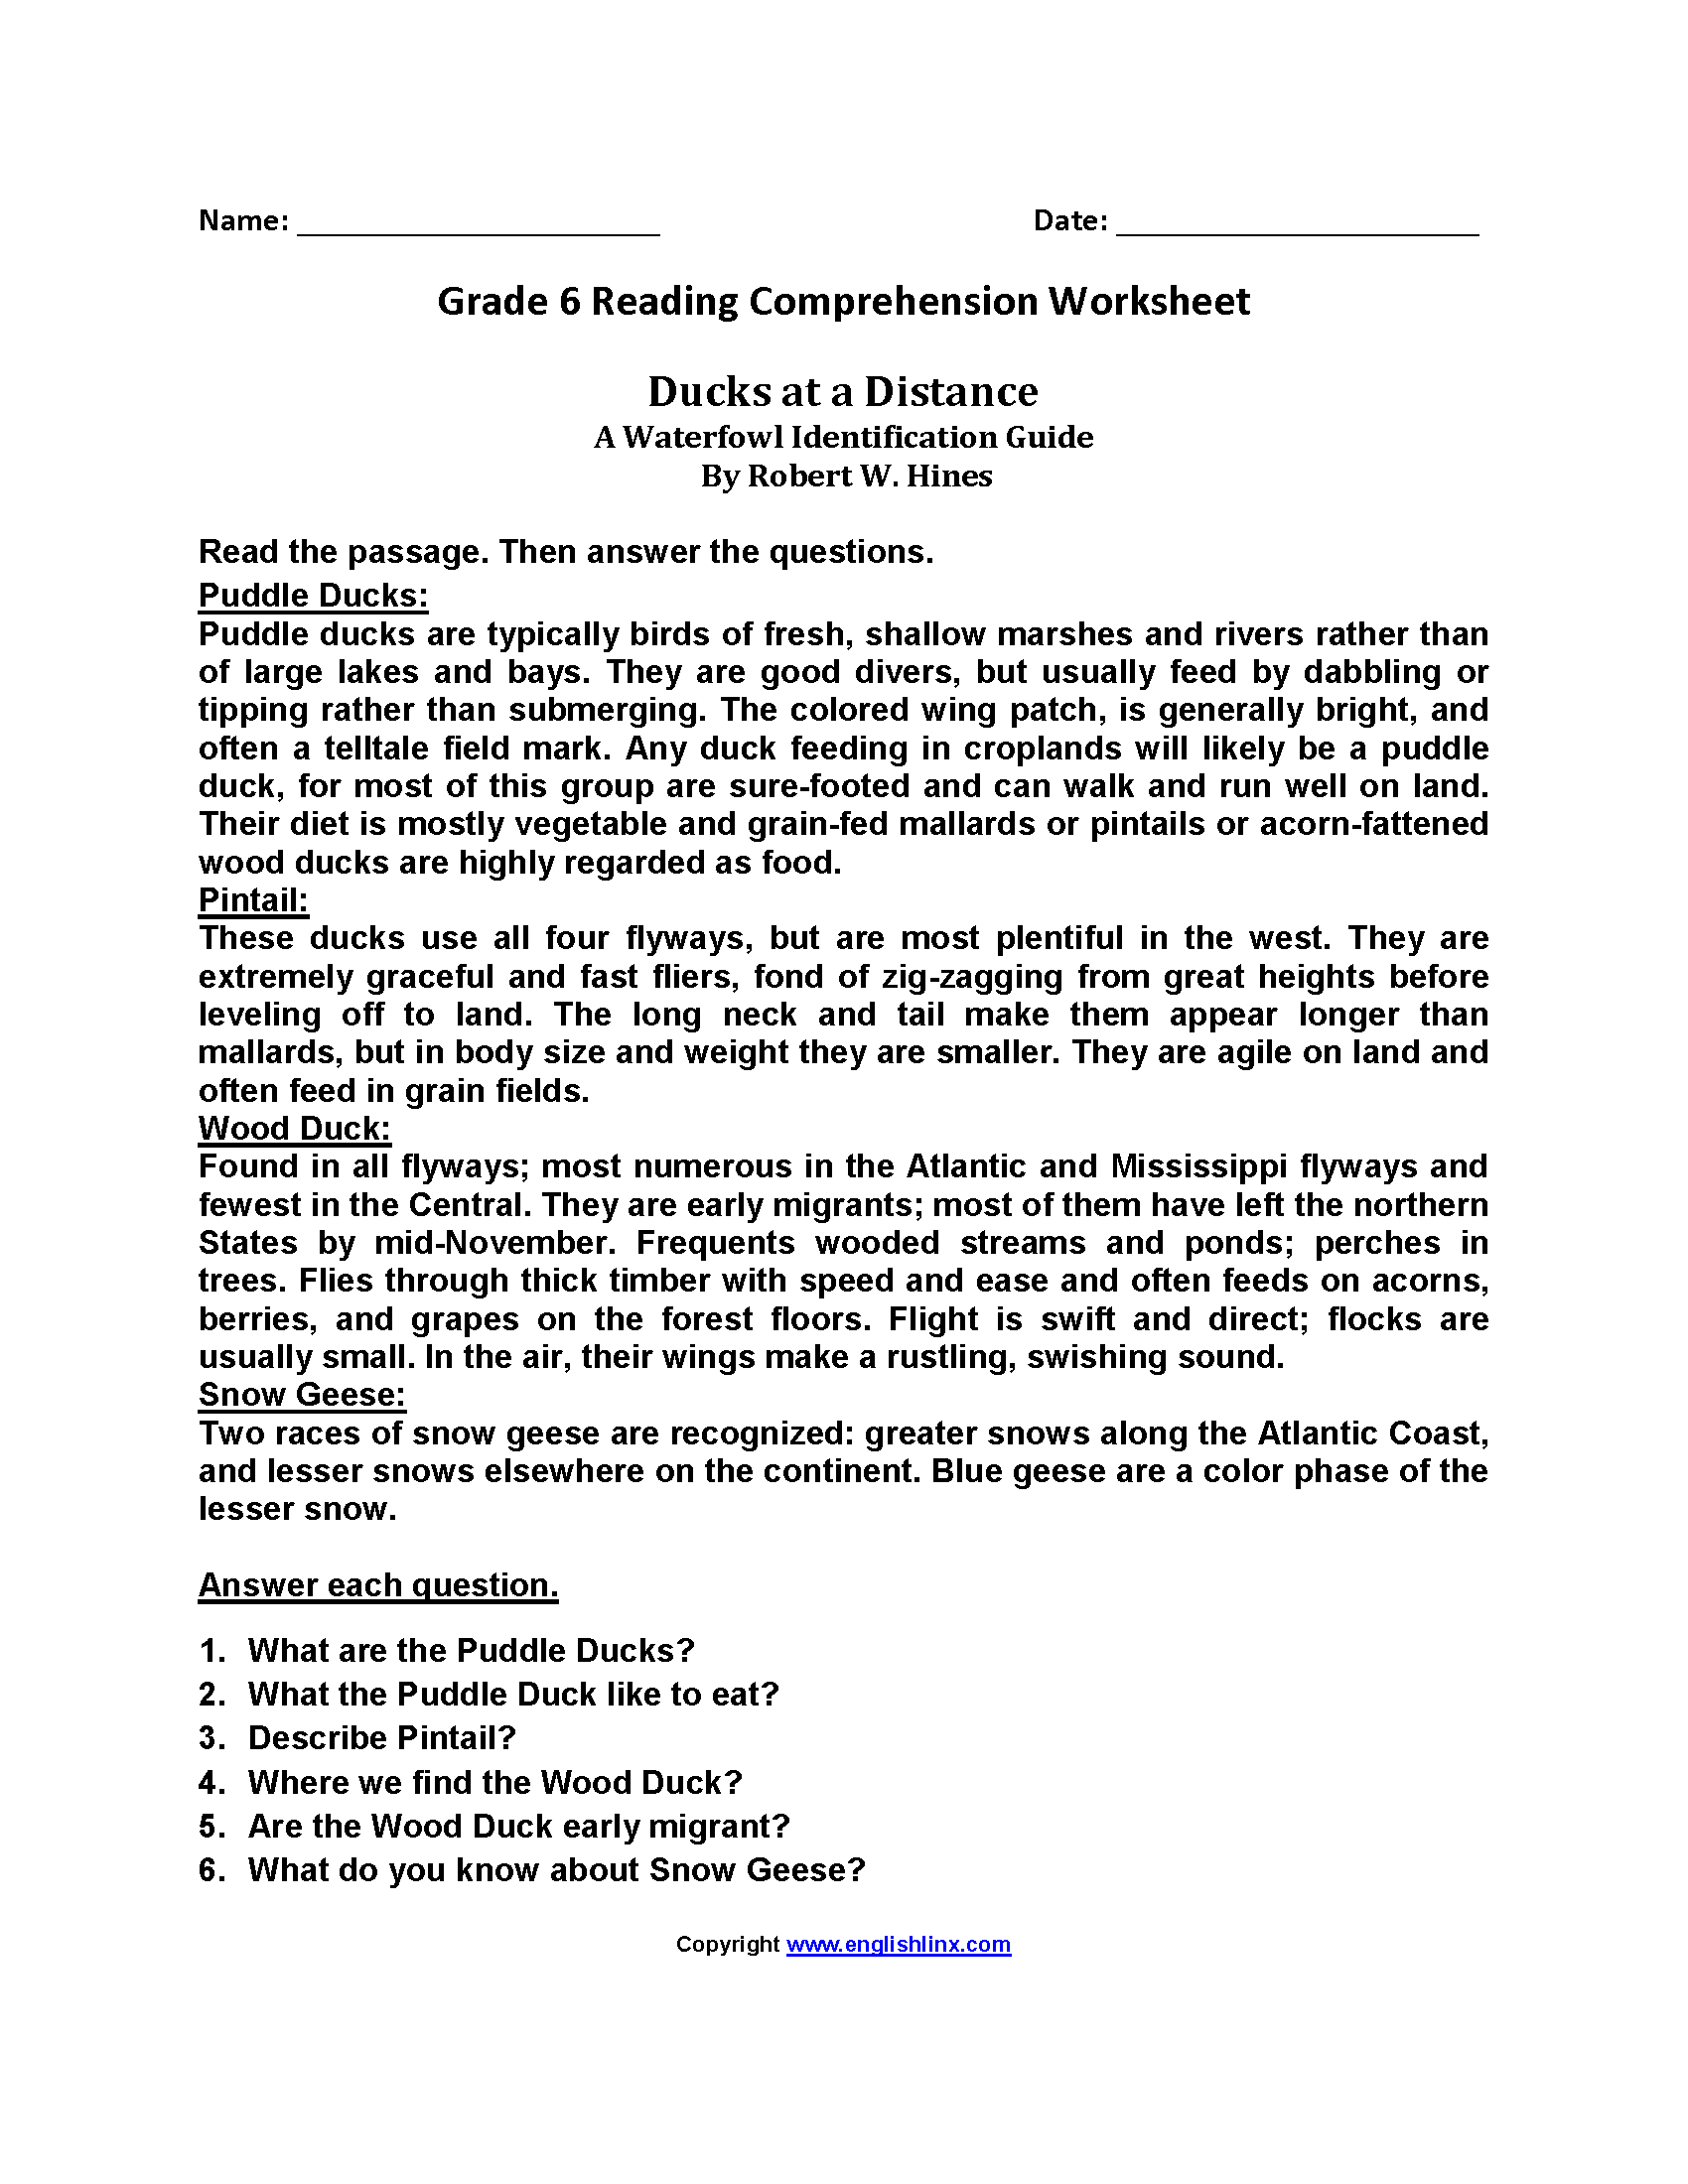 20 Free Printable Reading Comprehension Worksheets For 6th